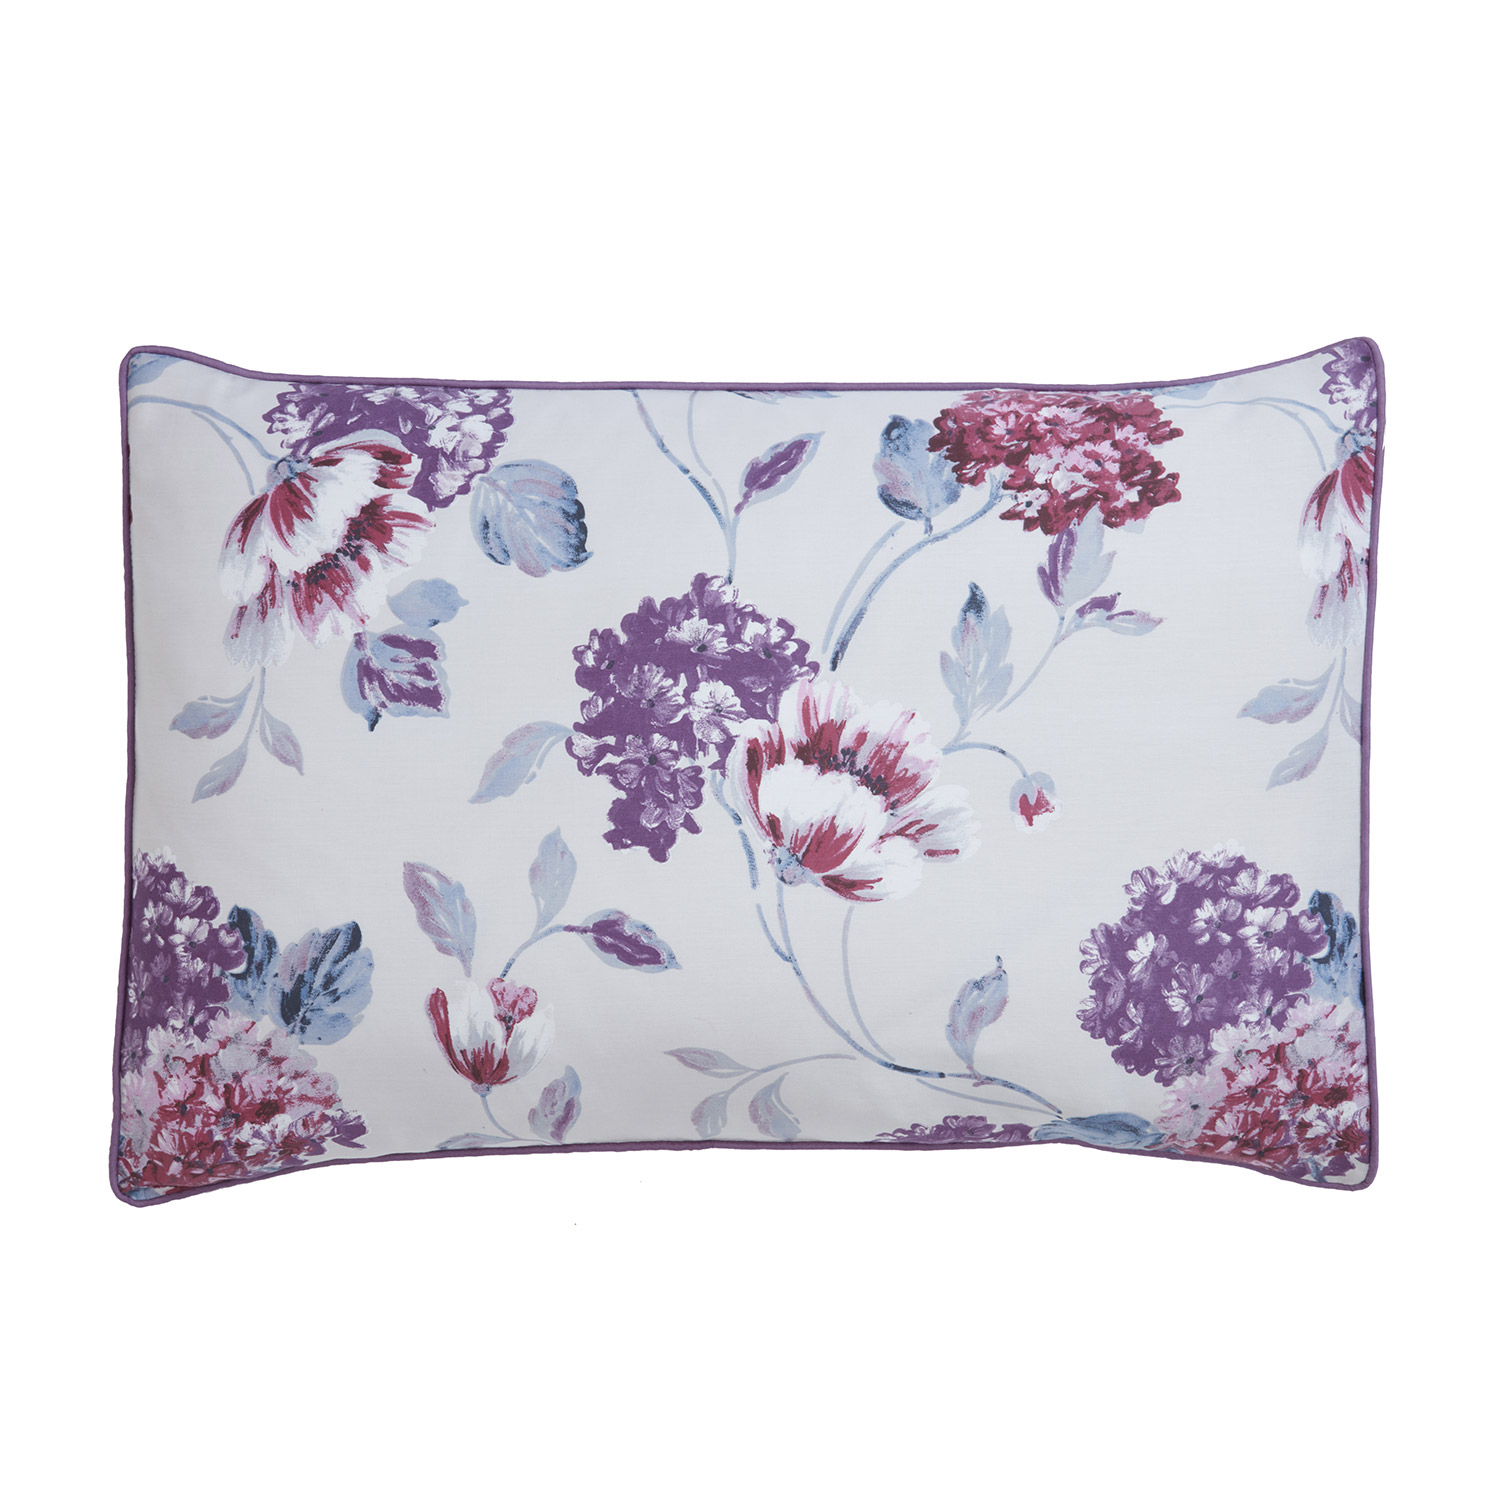 Stockists of Abigail Plum Pure Cotton Printed Housewife Pillow Cases (Pair)